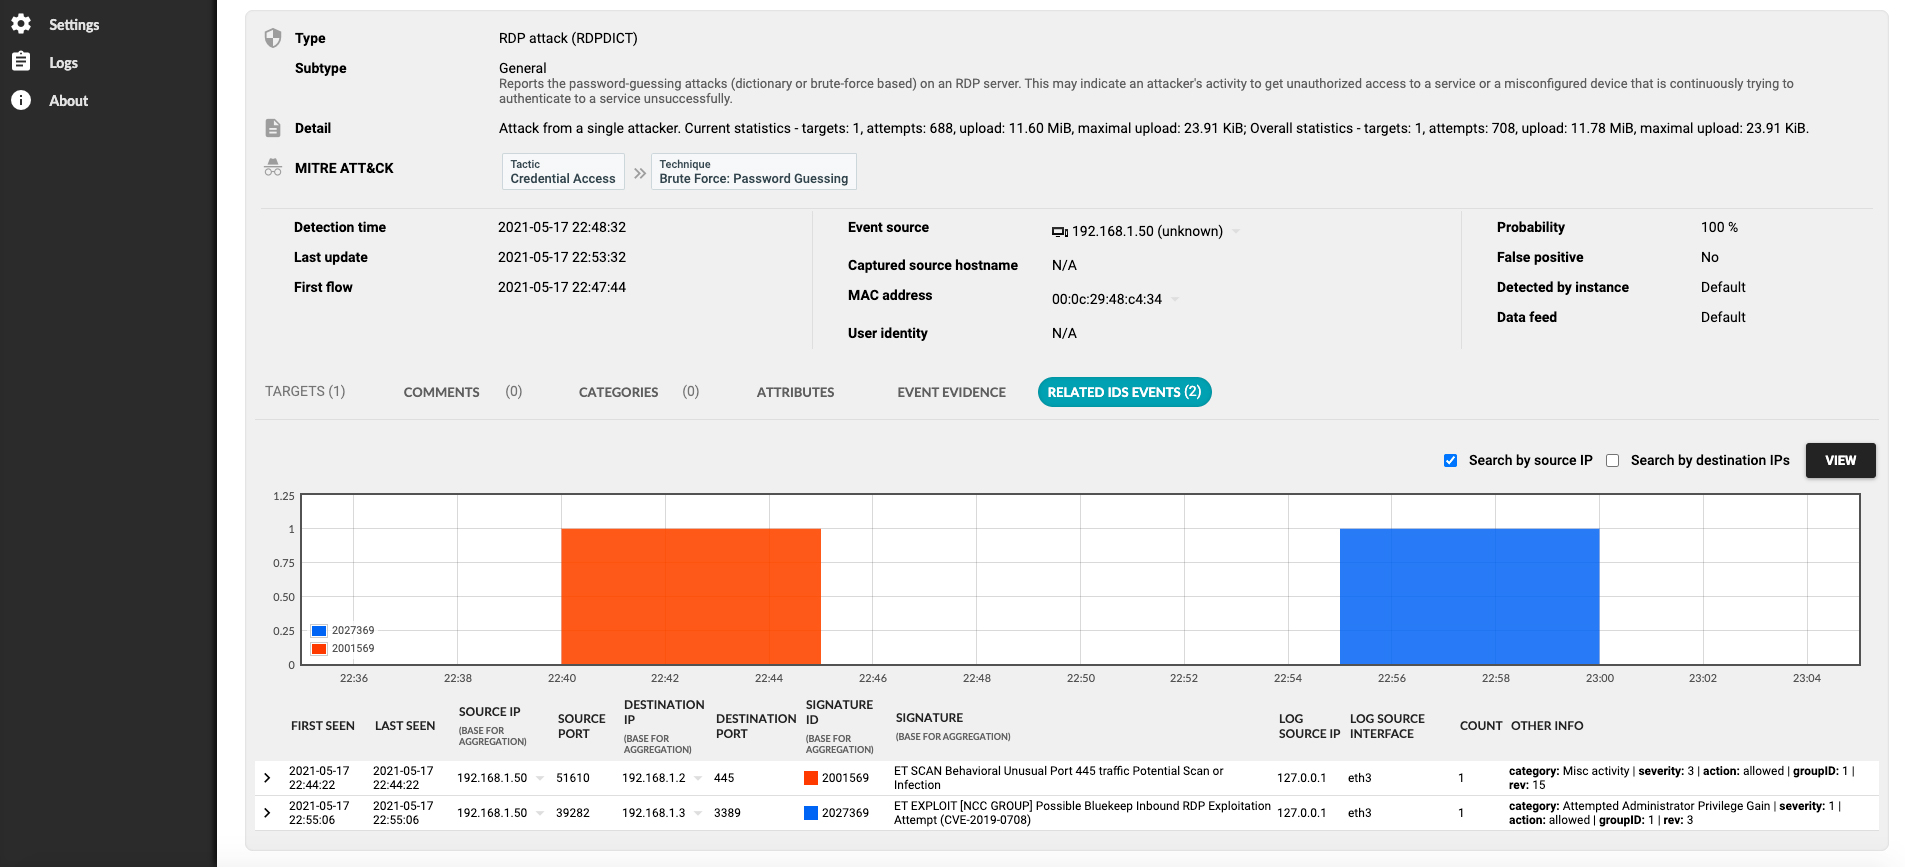 Detection of RDP attack exploiting CVE-2019-0708 by Kemp/Flowmon NDR solution